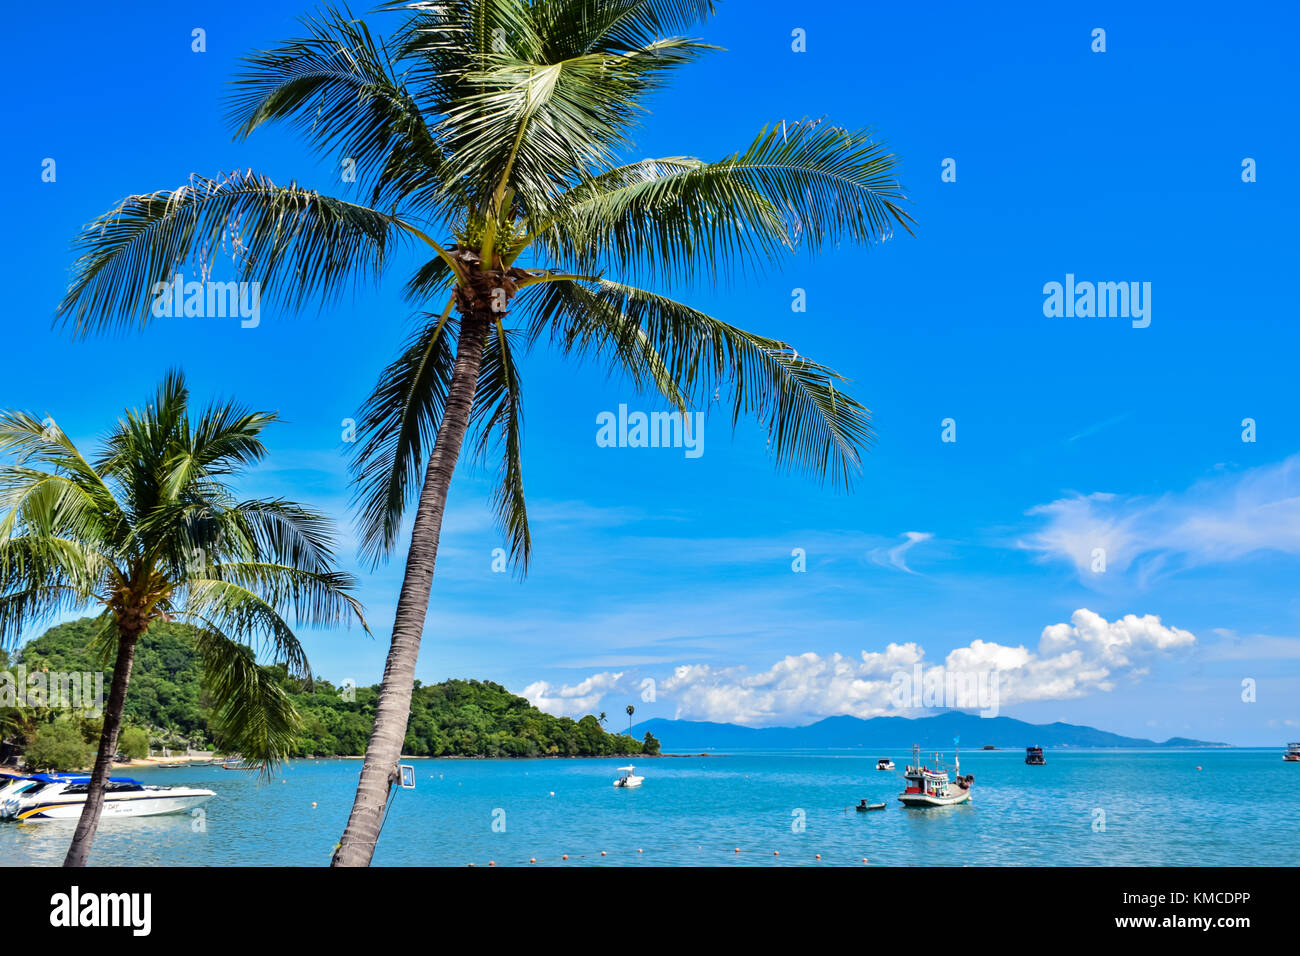 Beautiful tropical coconut palm trees at Thailand beach of Samui island, famous vacation destination Stock Photo